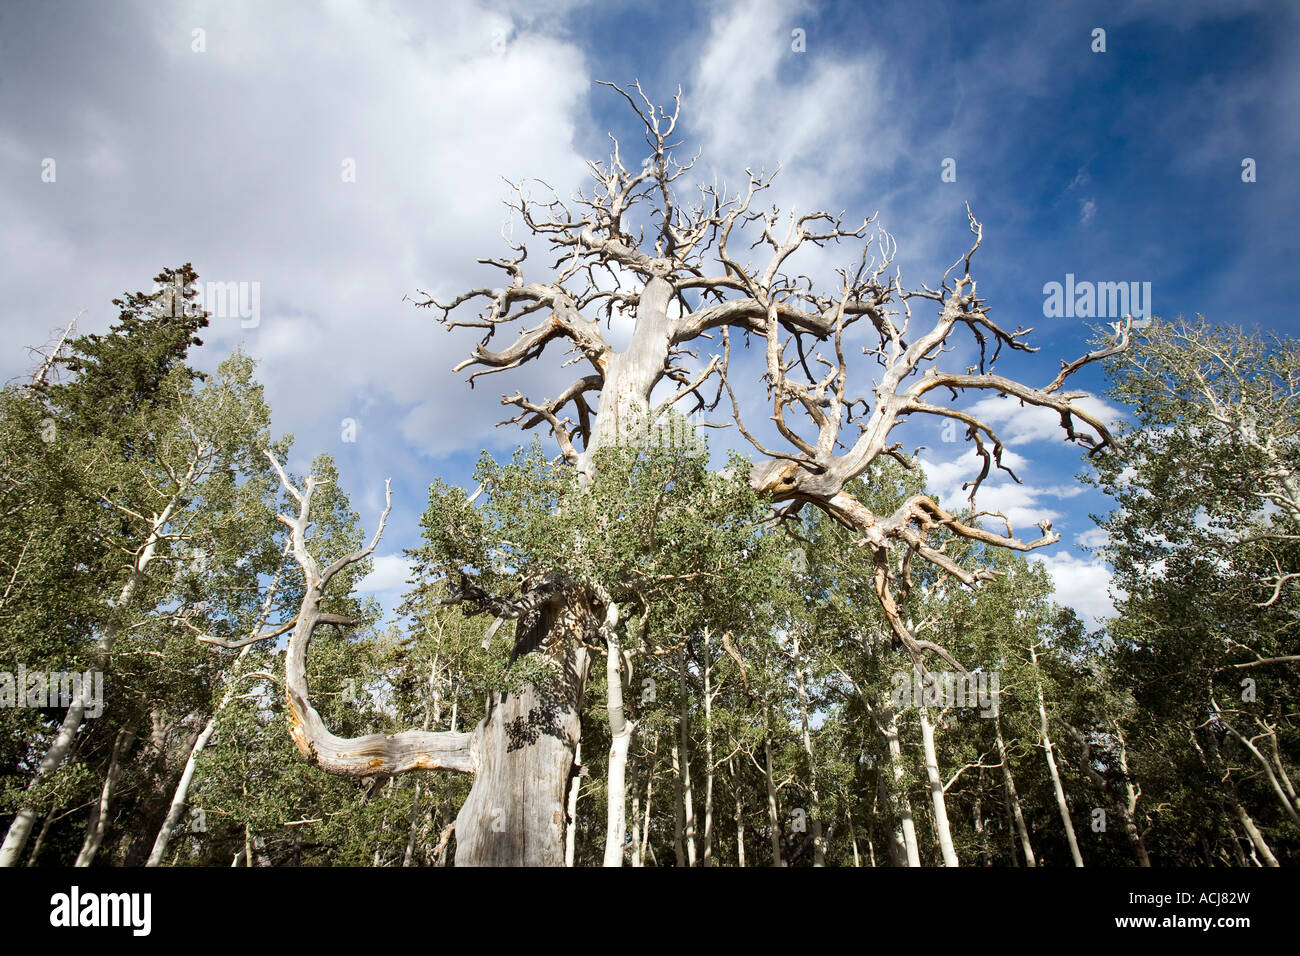 Briscoe pine and firs in Great Basin National Park - Stock Image